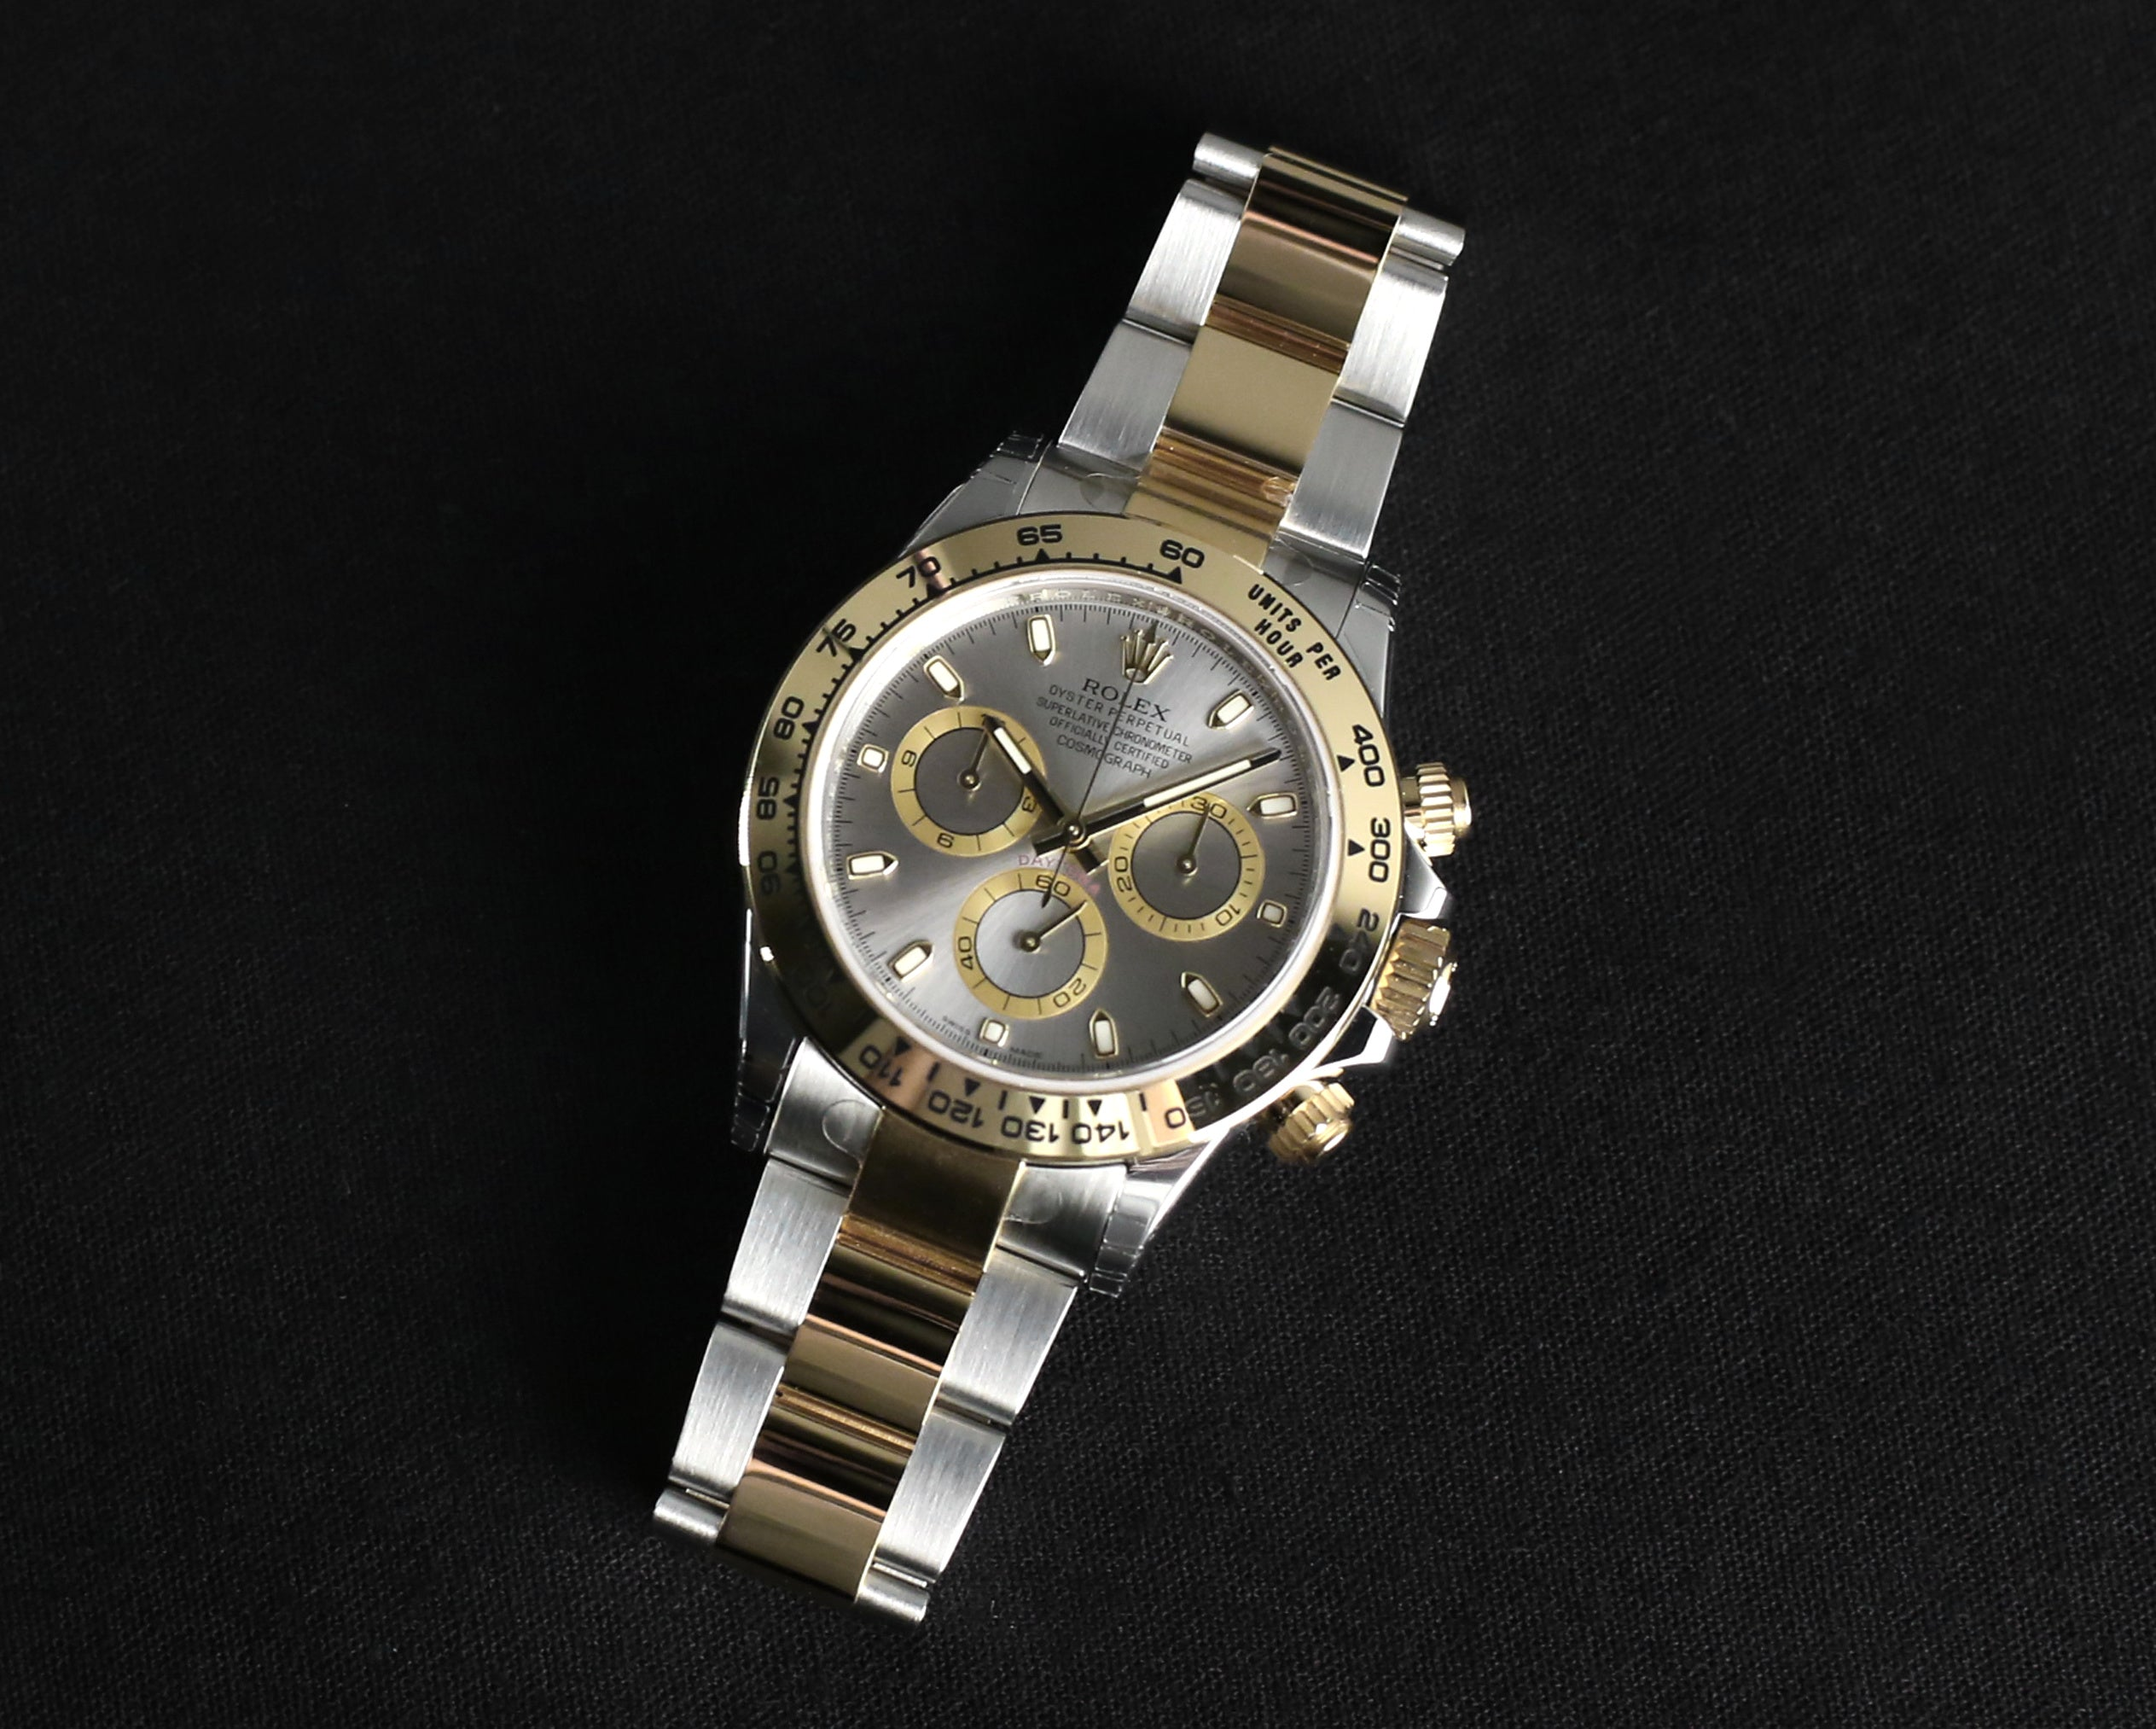 Rolex Cosmograph Daytona 40mm 116503 Silver Dial